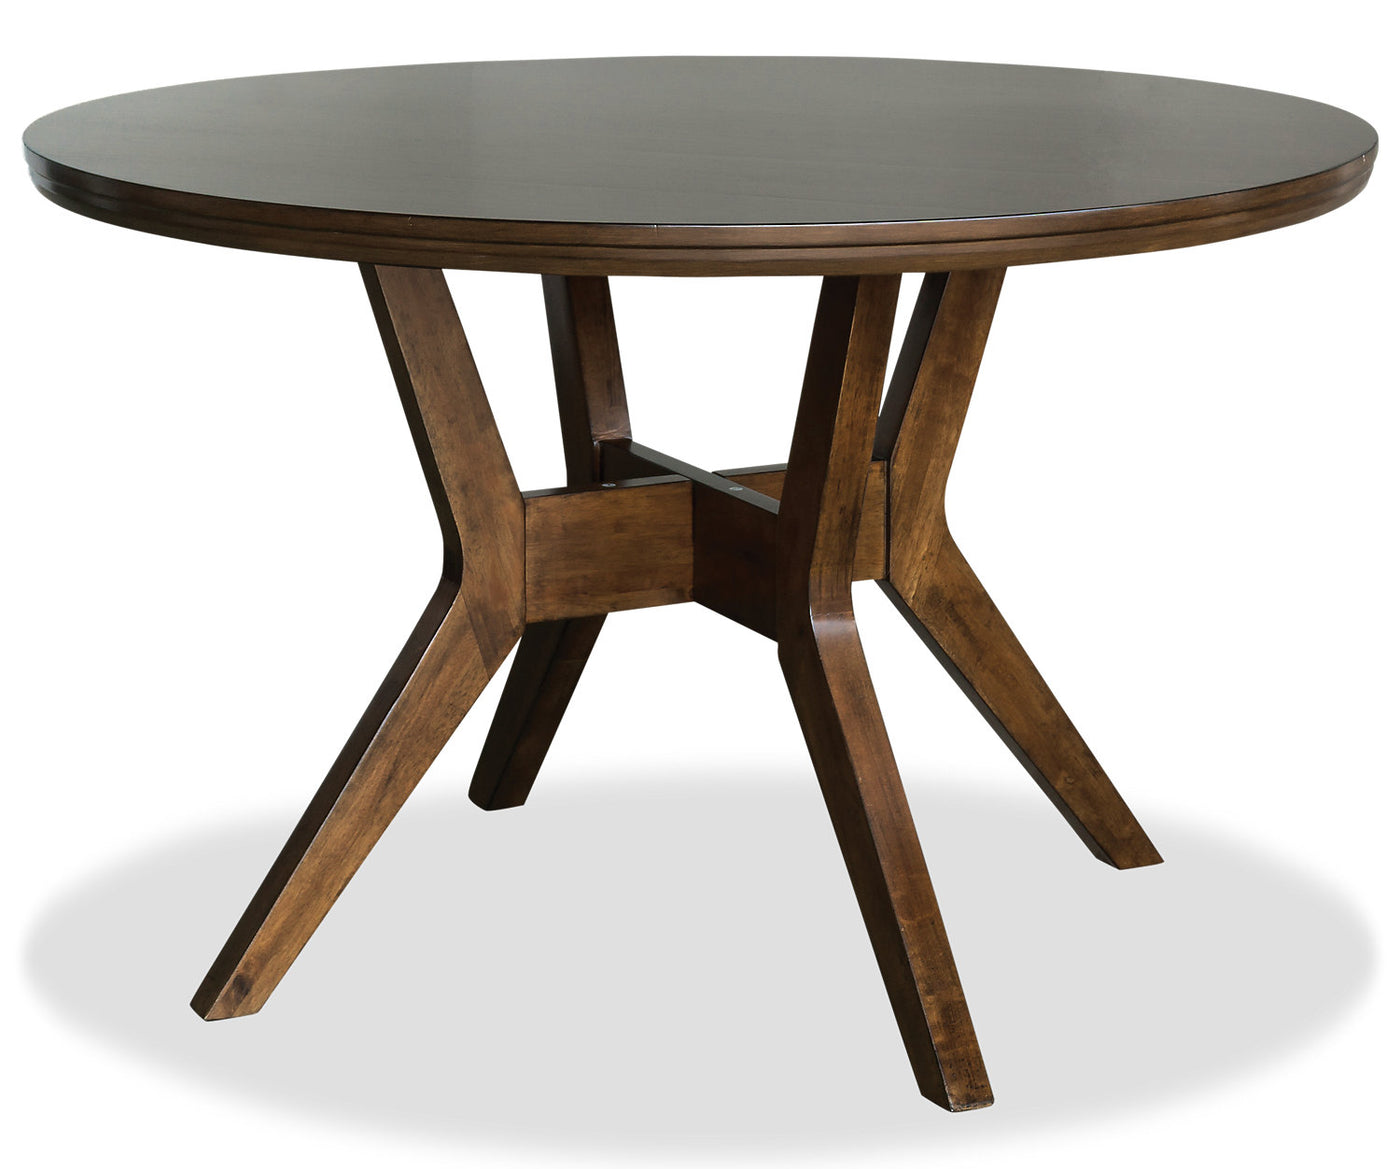 8a85221621 Chelsea Round Dining Table | The Brick